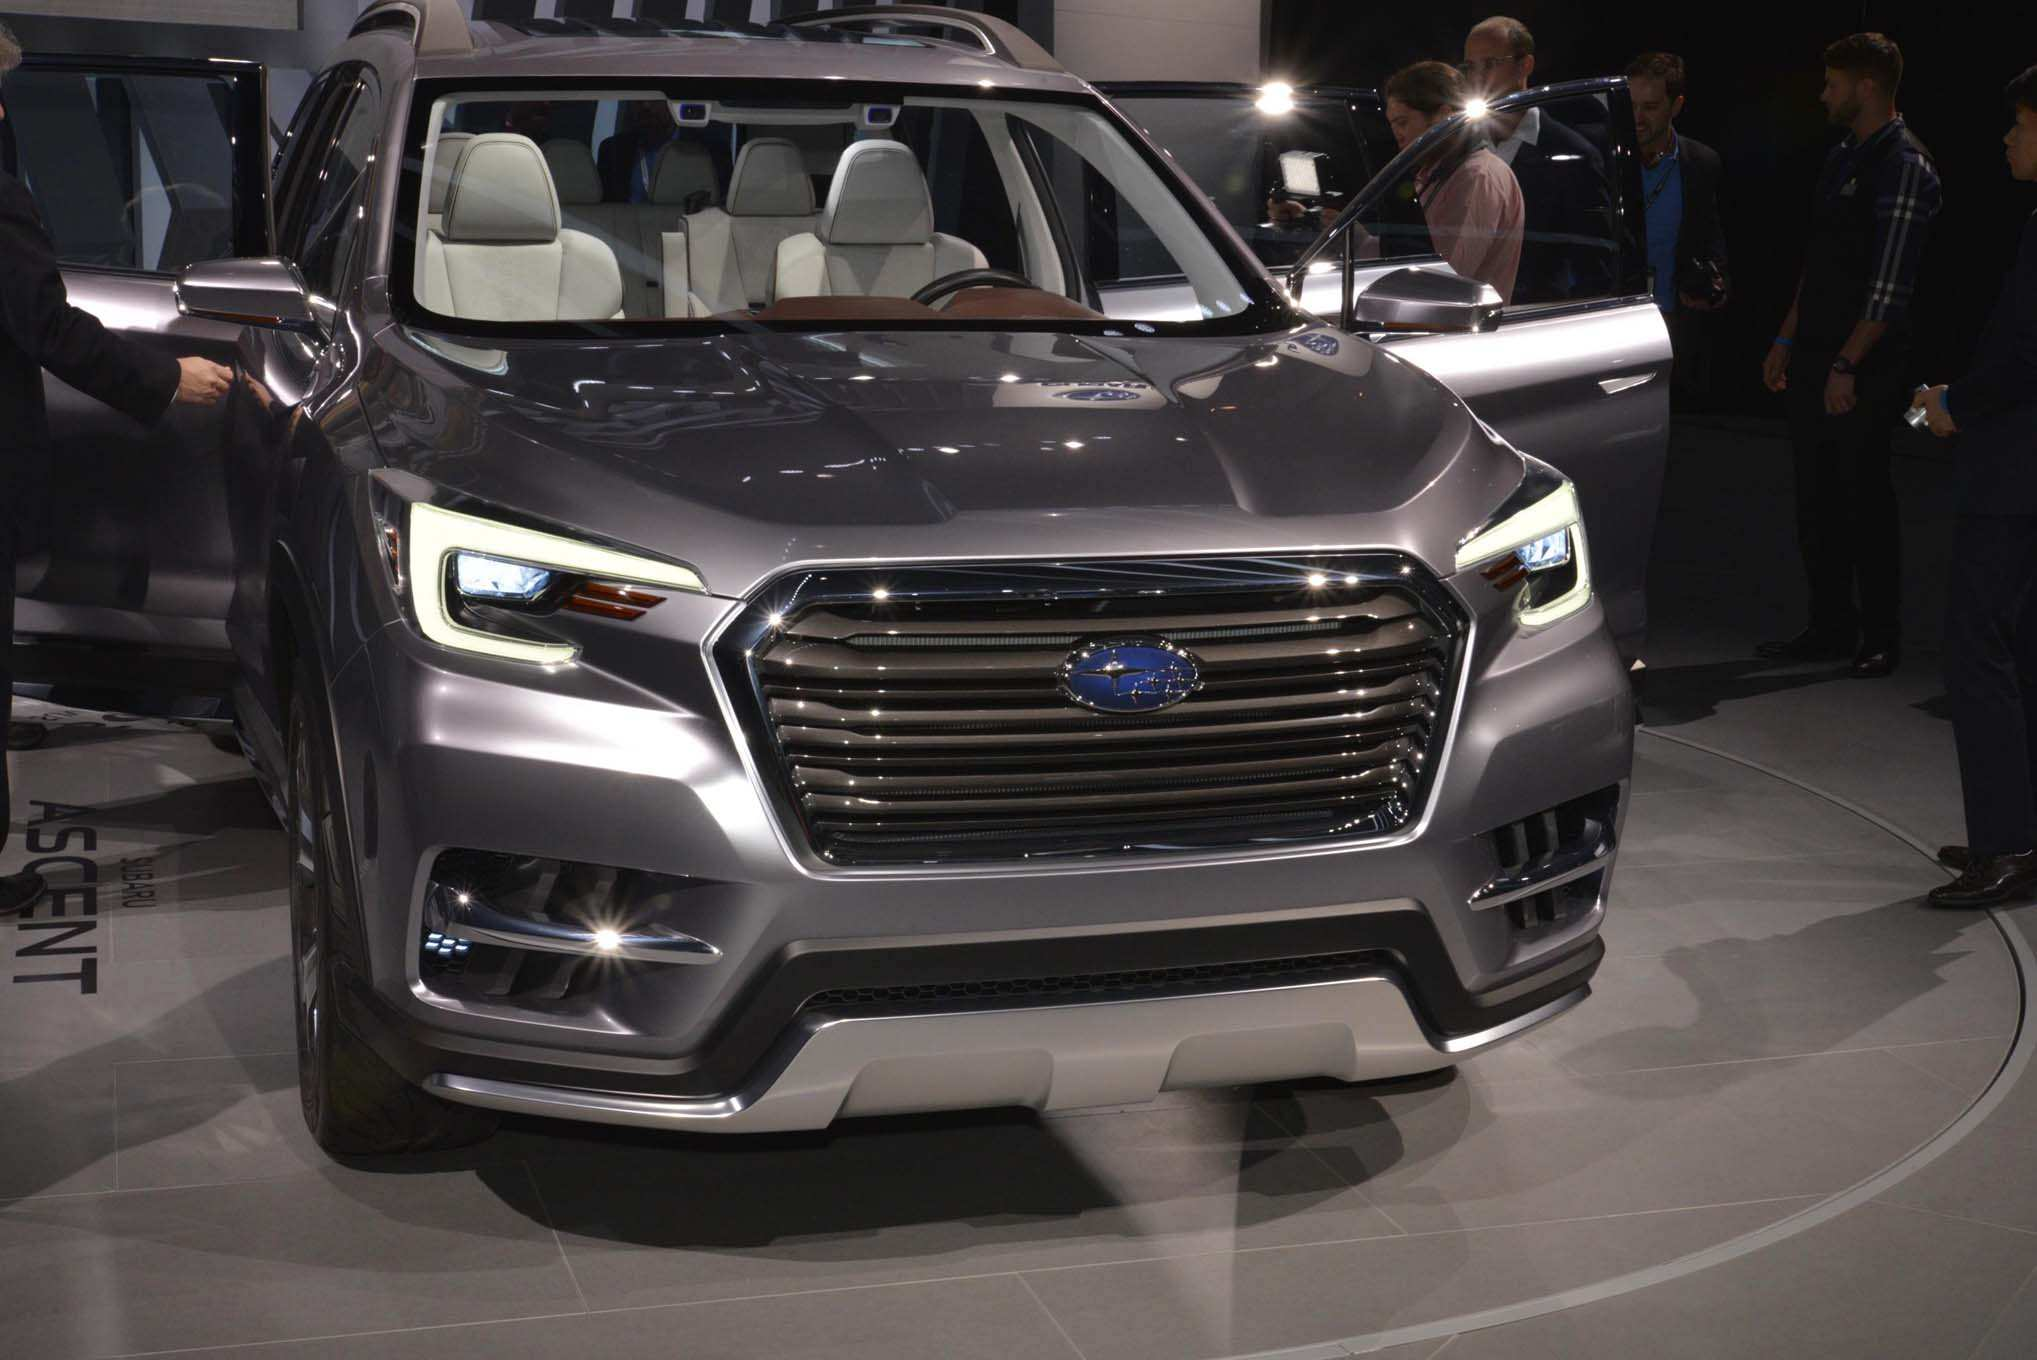 80 Great Best 2019 Subaru Ascent Release Date Usa Specs Price and Review for Best 2019 Subaru Ascent Release Date Usa Specs